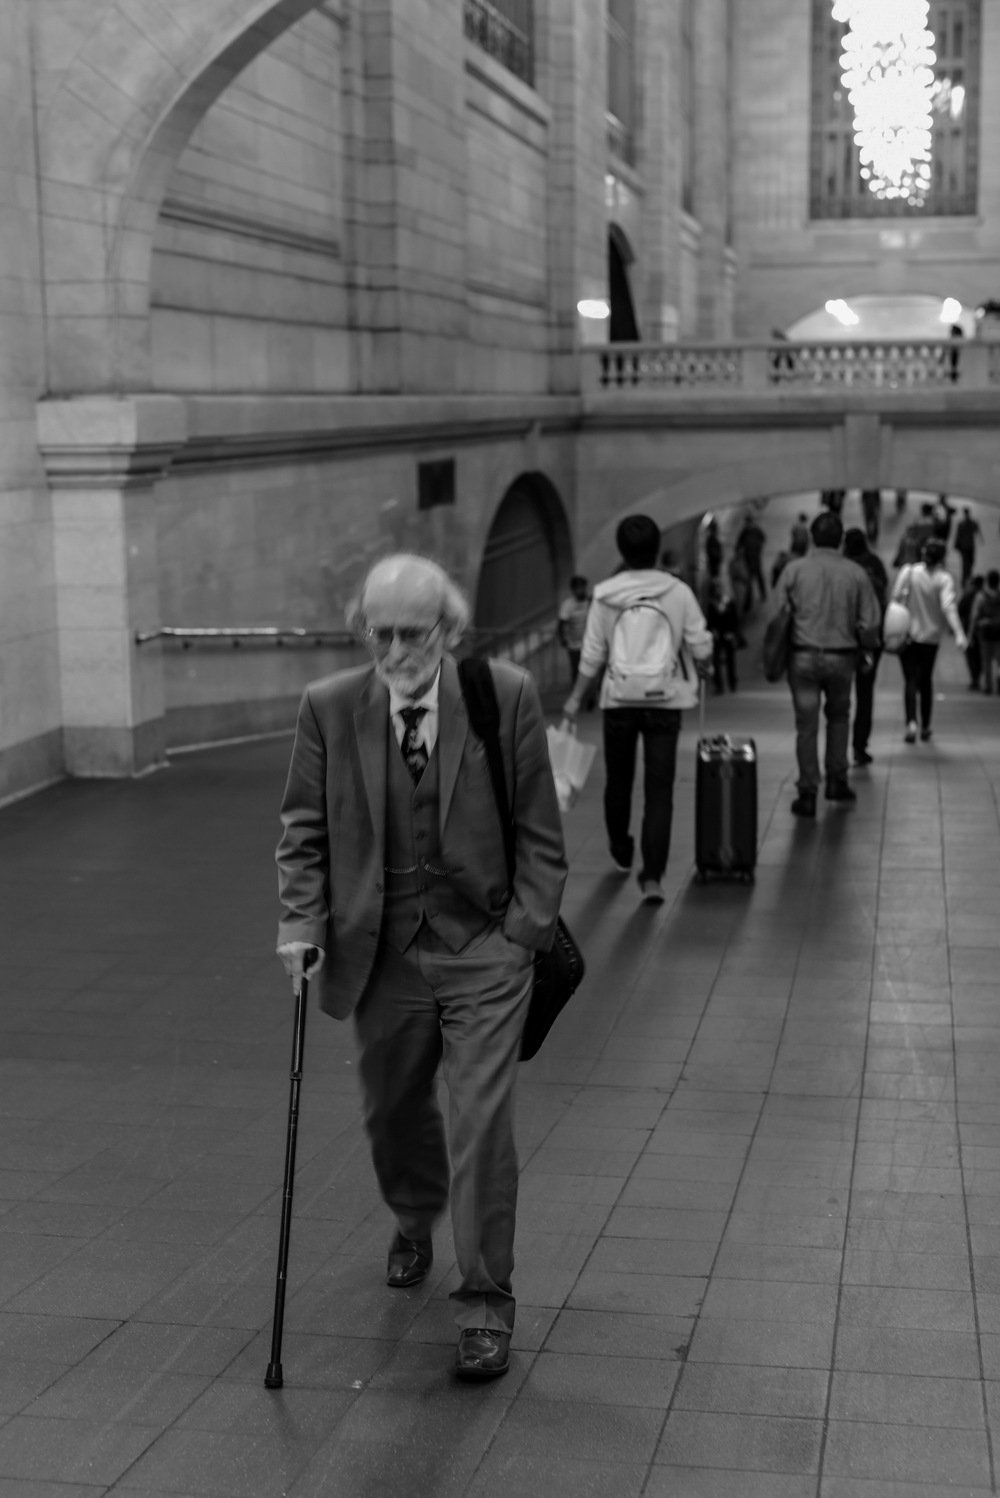 My camera settings weren't ready for the inside of Grand Central Station, but I love this old man too much not to use this photo.